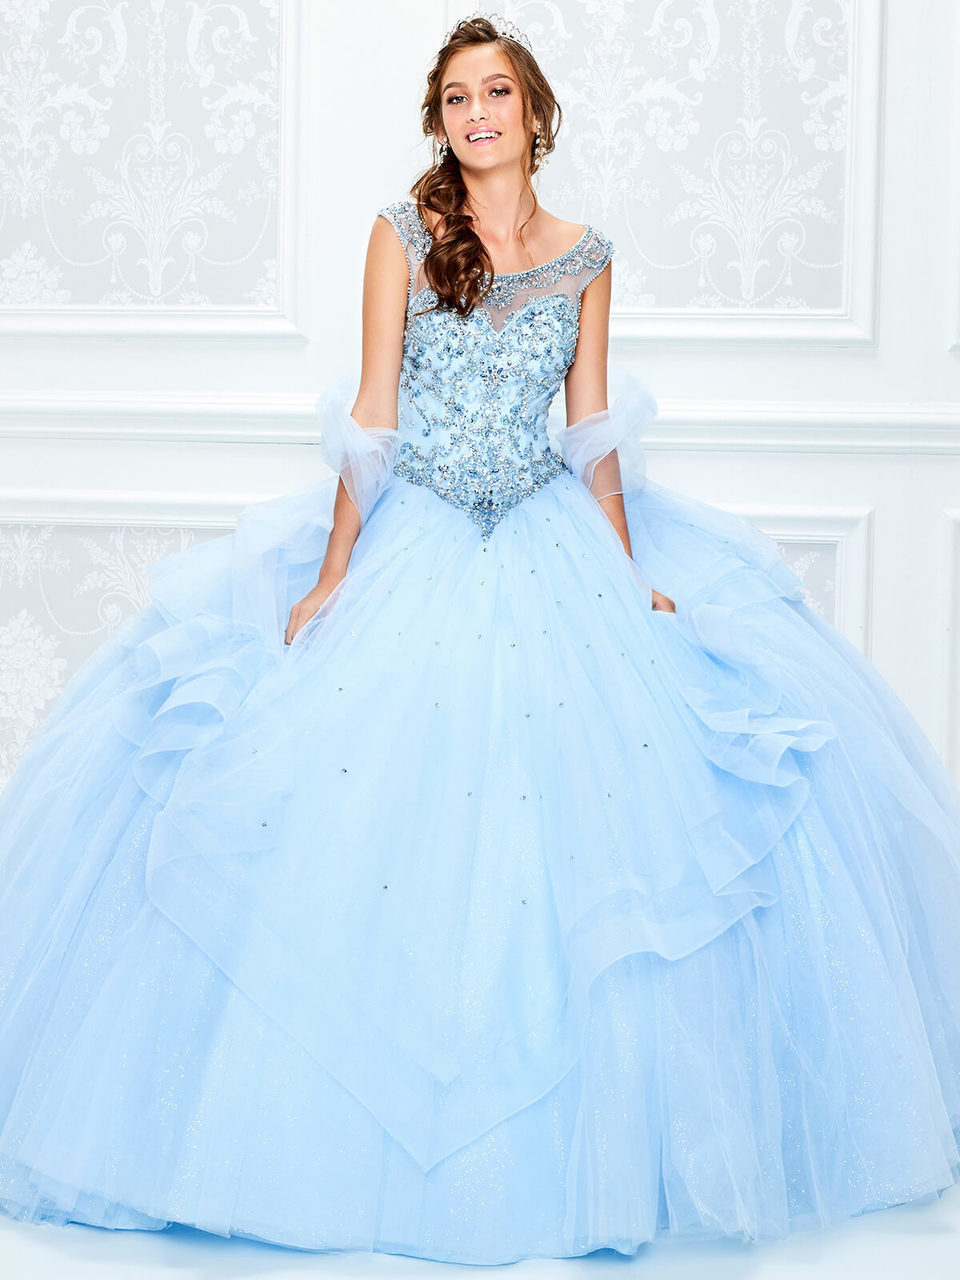 f67bb44b0 Princesa Quinceanera. $698.00. sweetheart illusion tulle ball princesa by ariana  vara pr11938. Free shipping